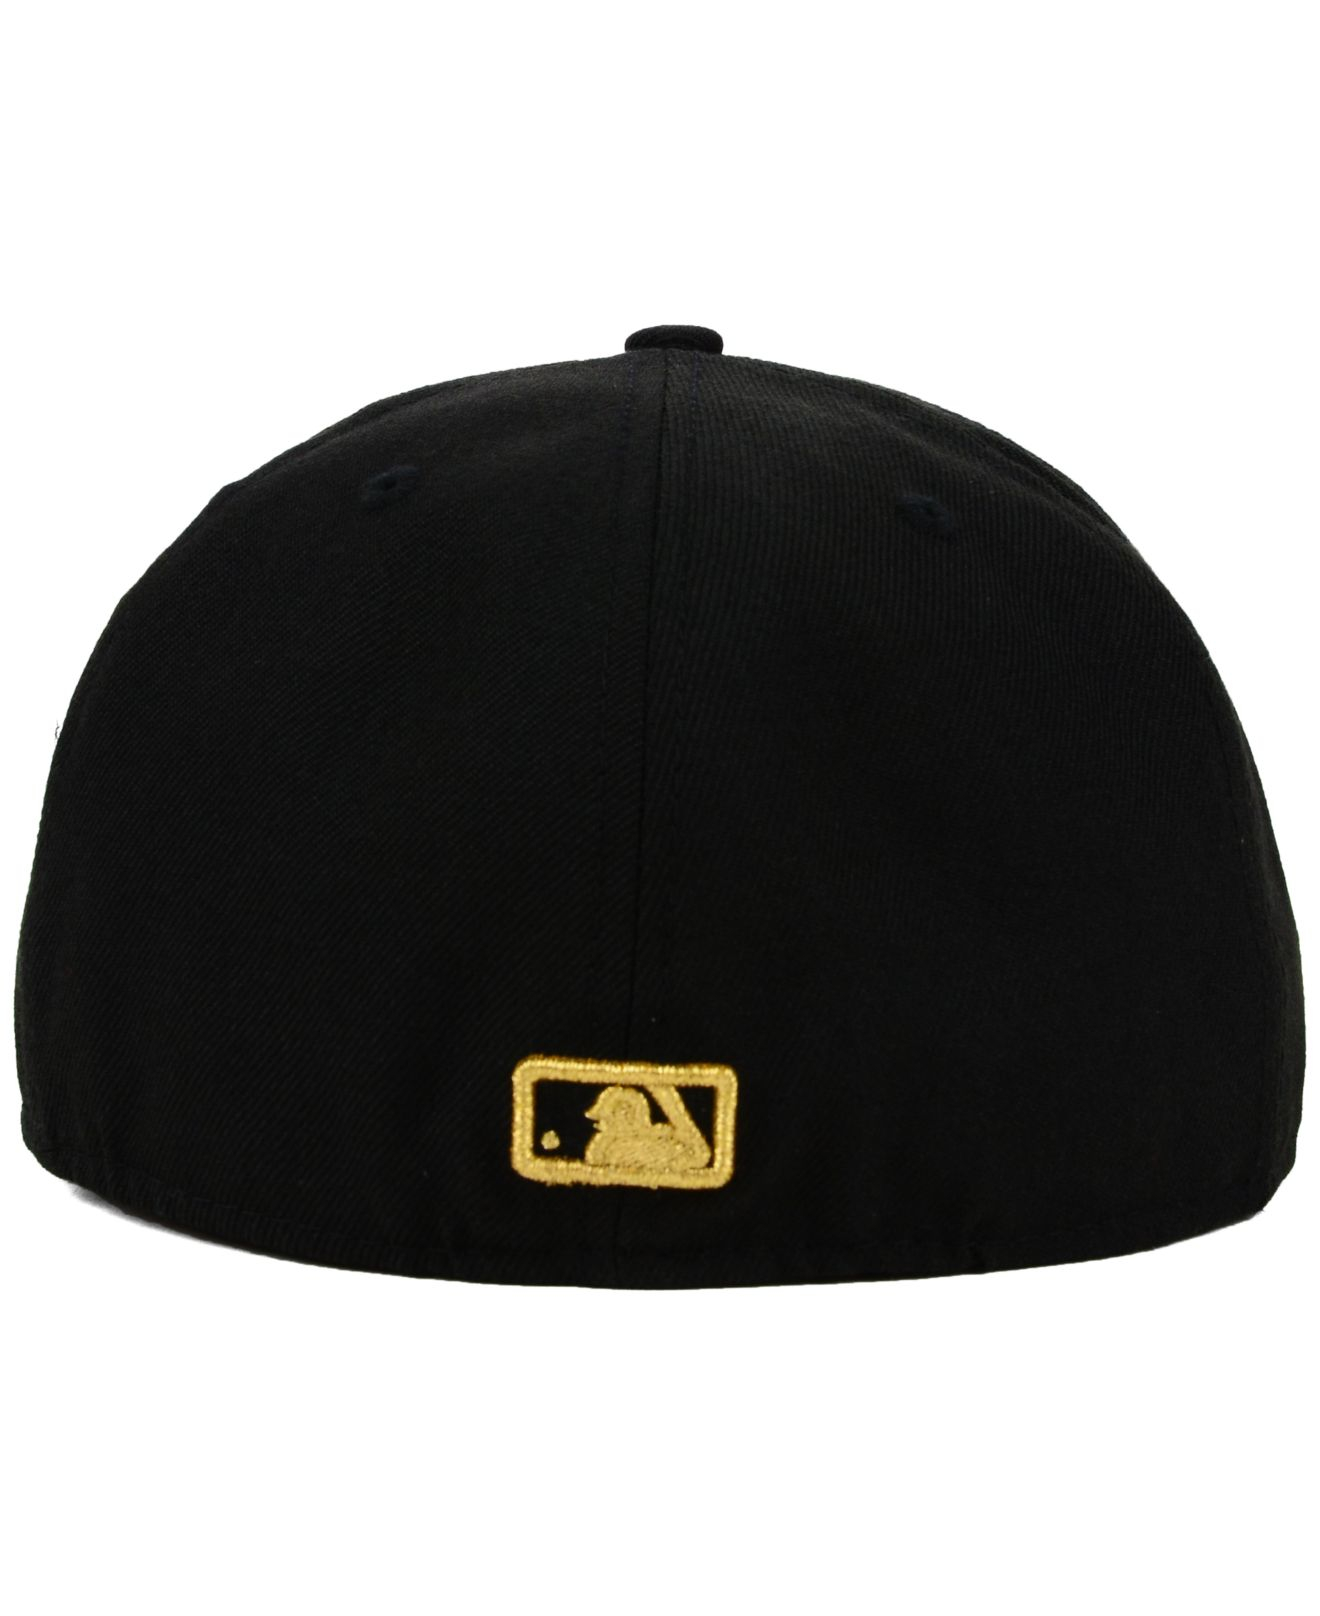 discount bc1b5 4e95f ... closeout lyst ktz tampa bay rays gold 59fifty cap in black for men  90020 bb492